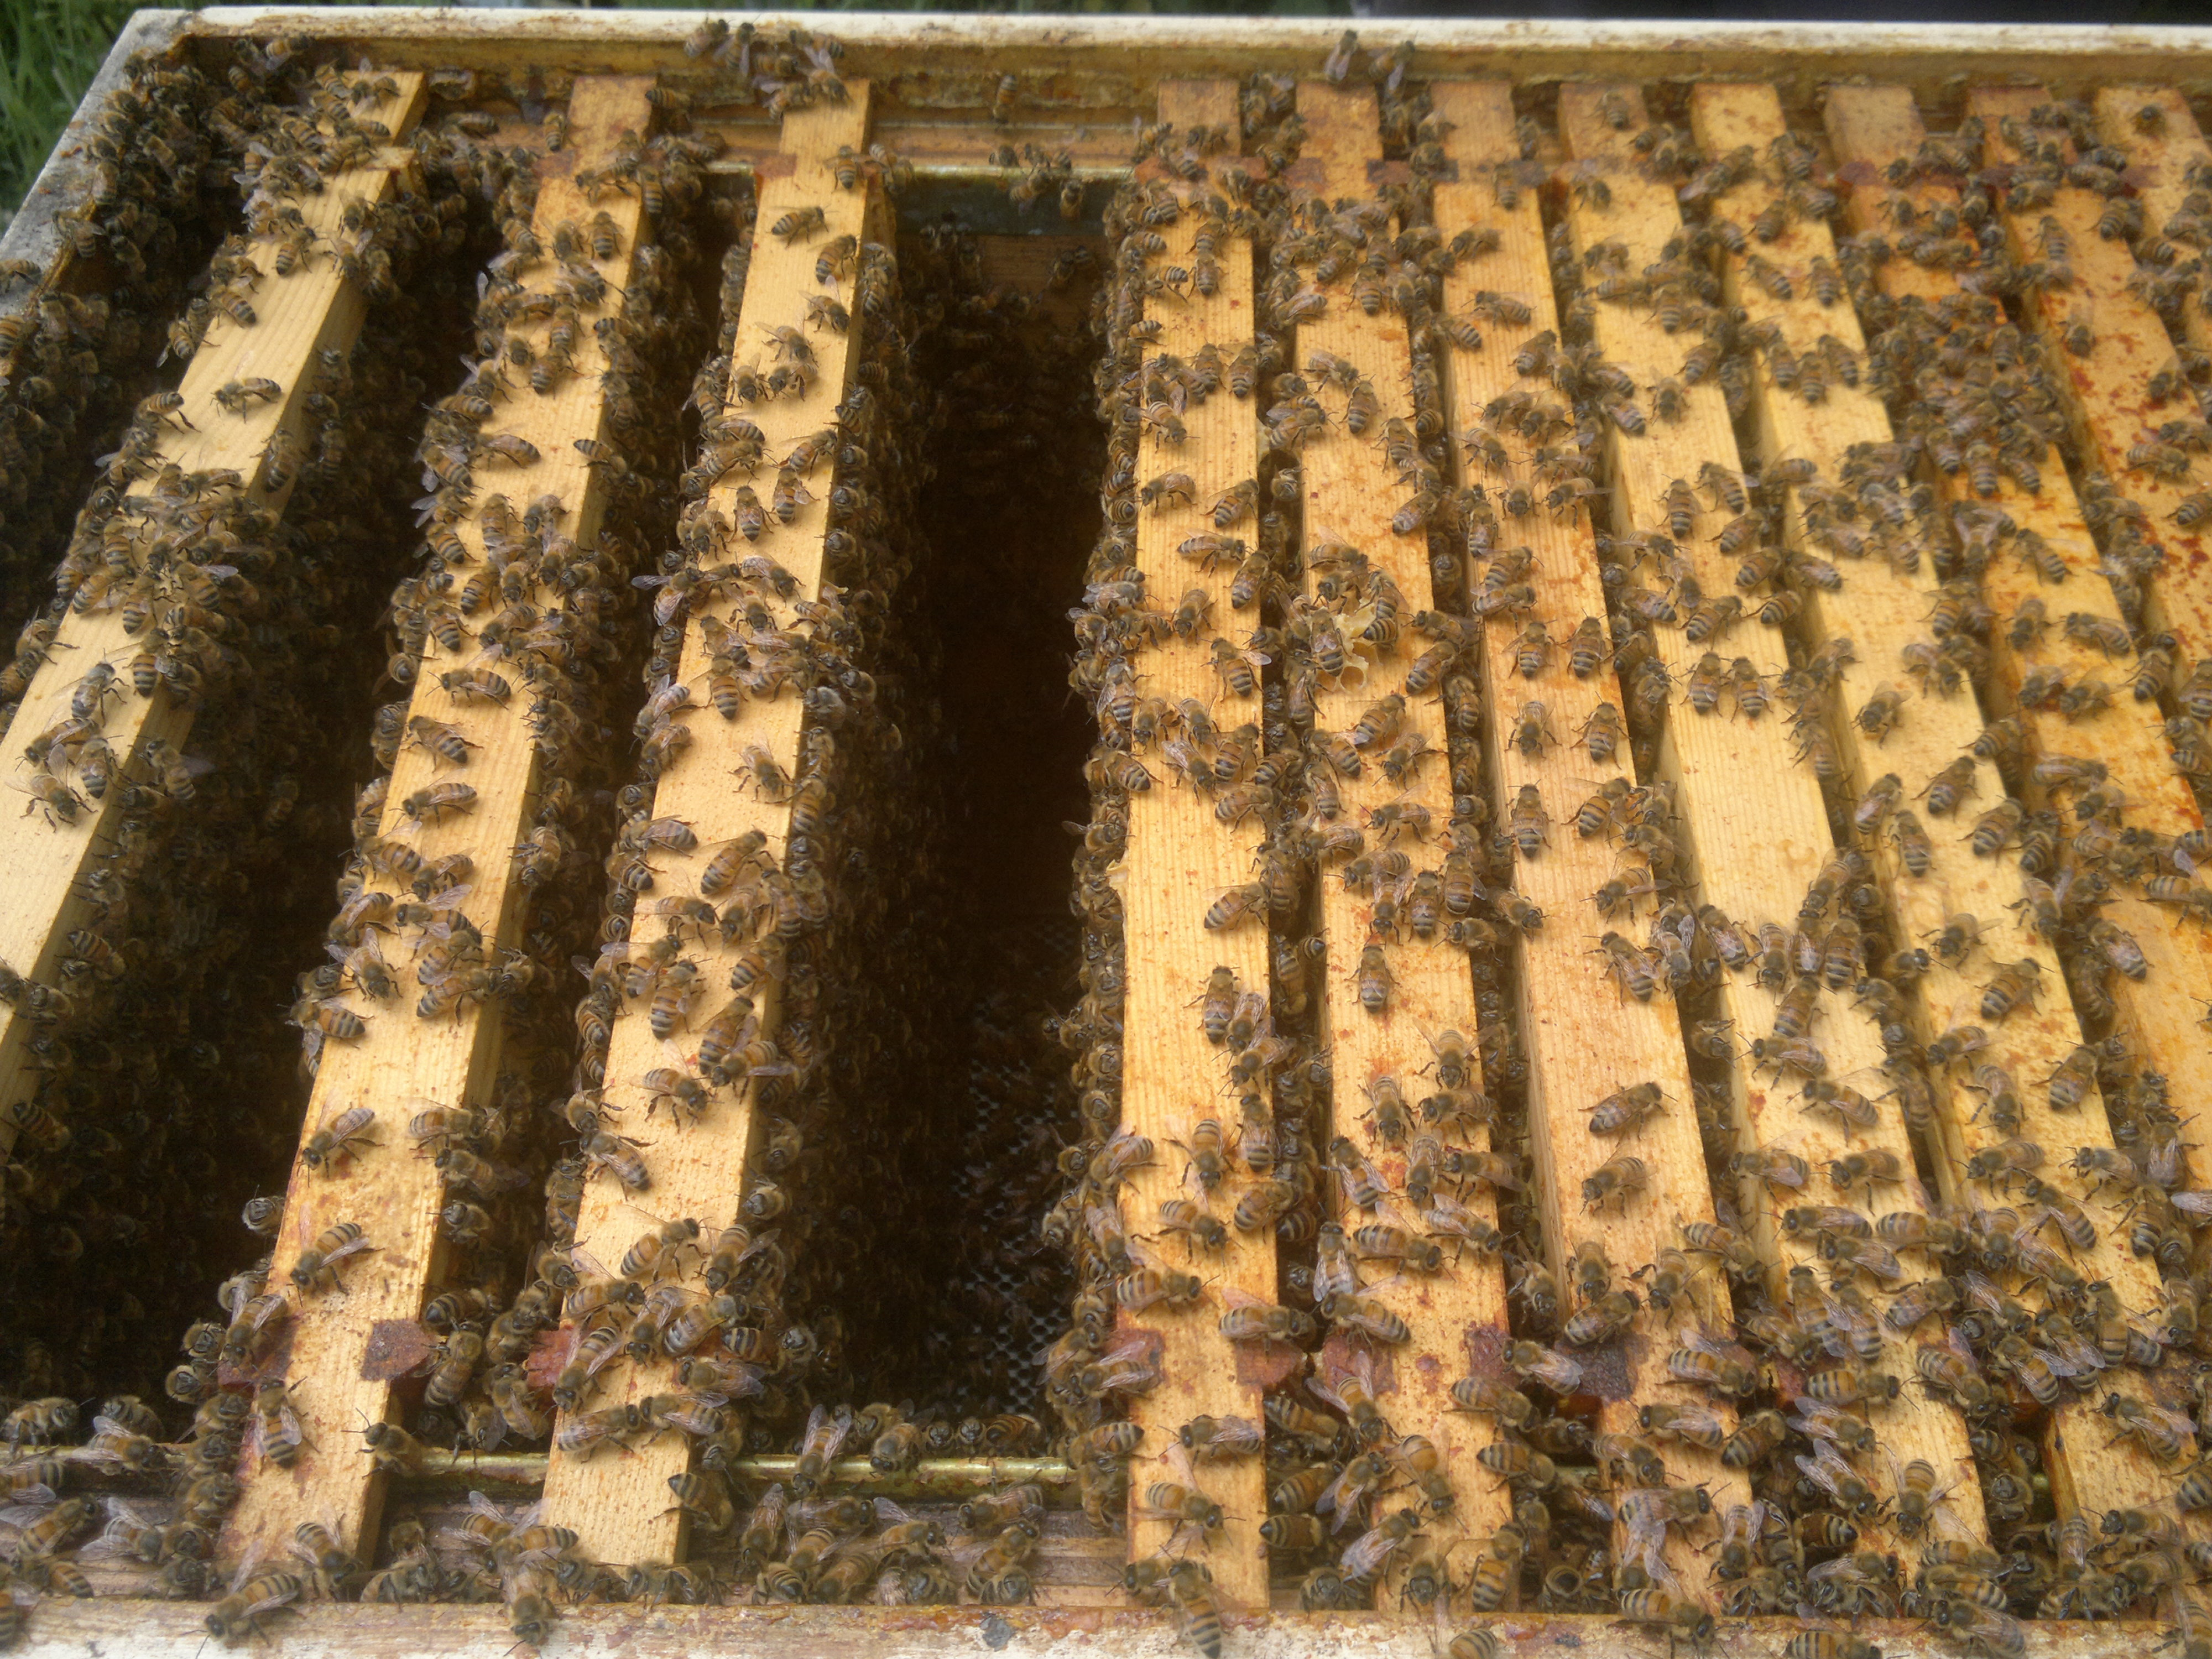 The long deep hive houses a huge number of bees - each frame is packed